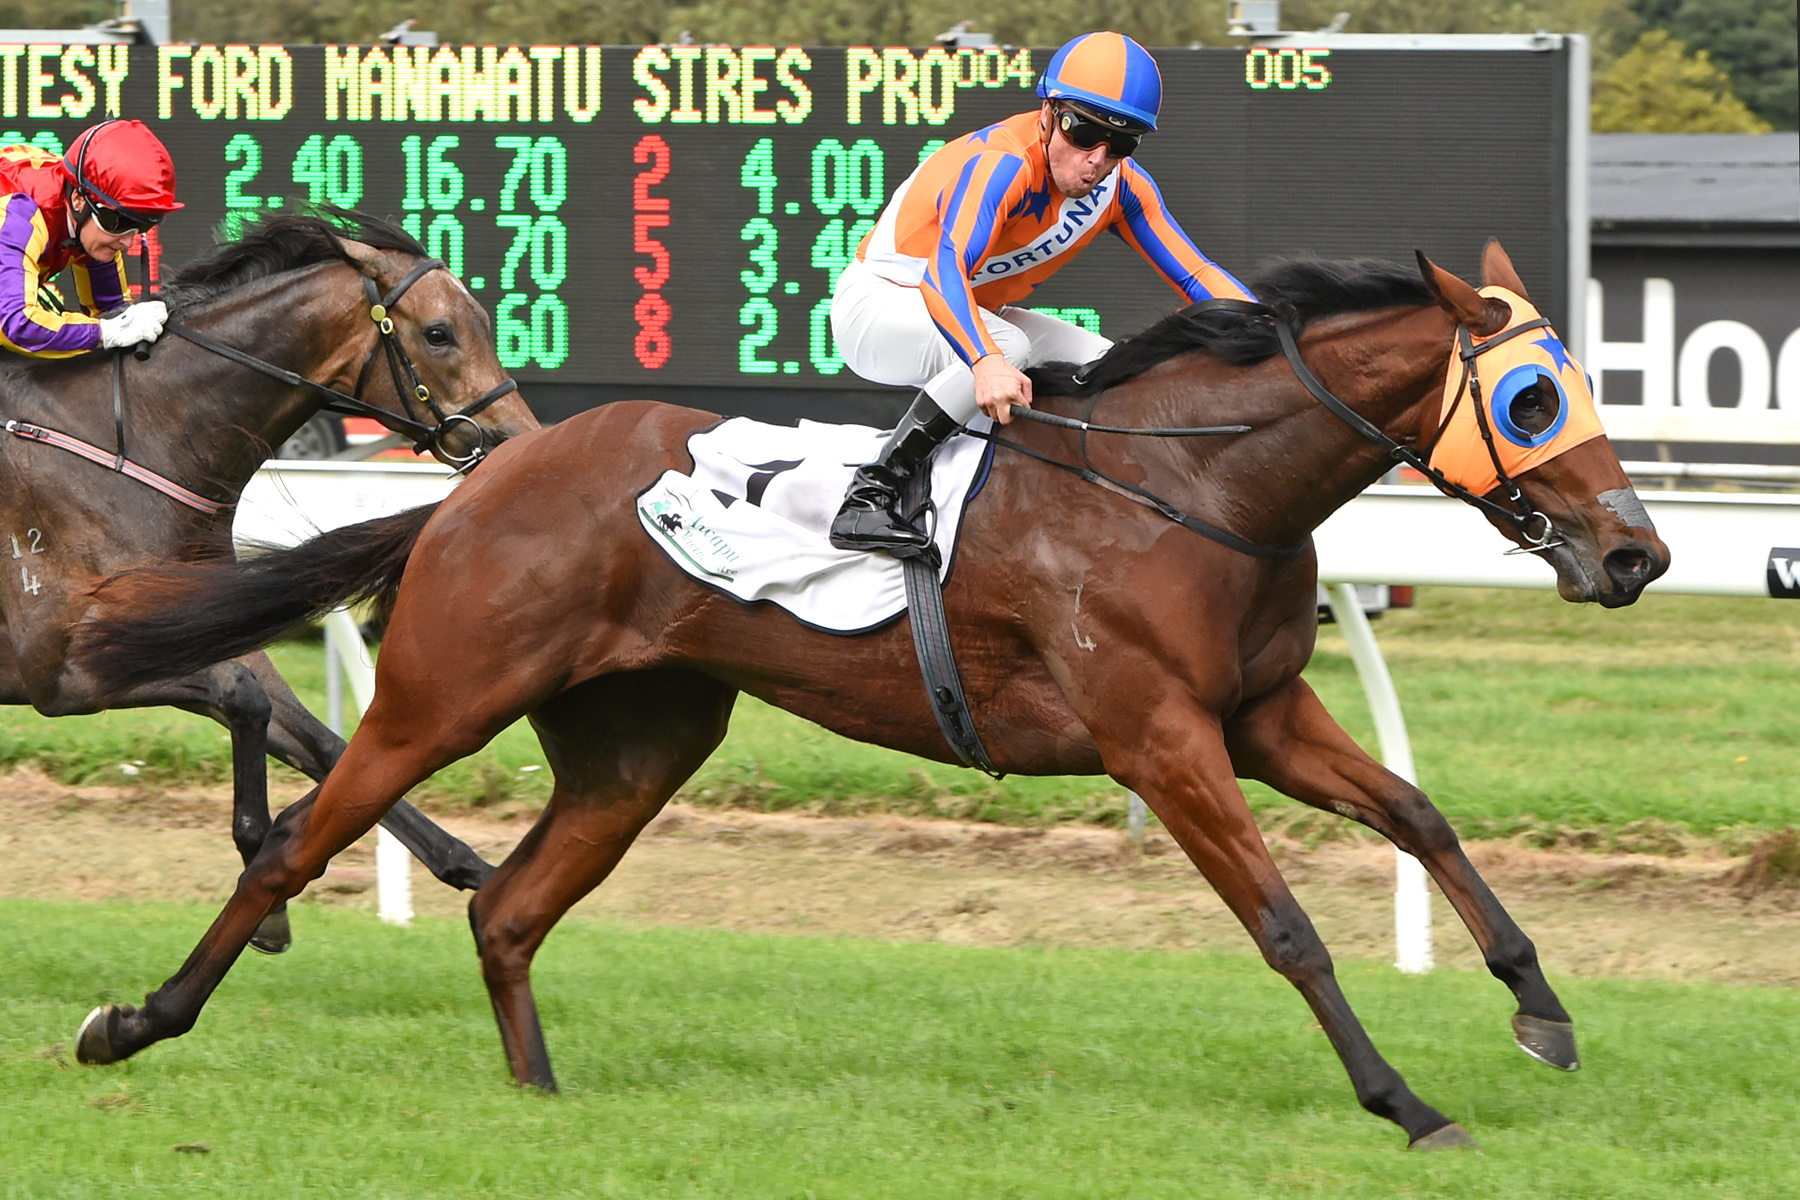 8th G1 win for Wylie Hall relative